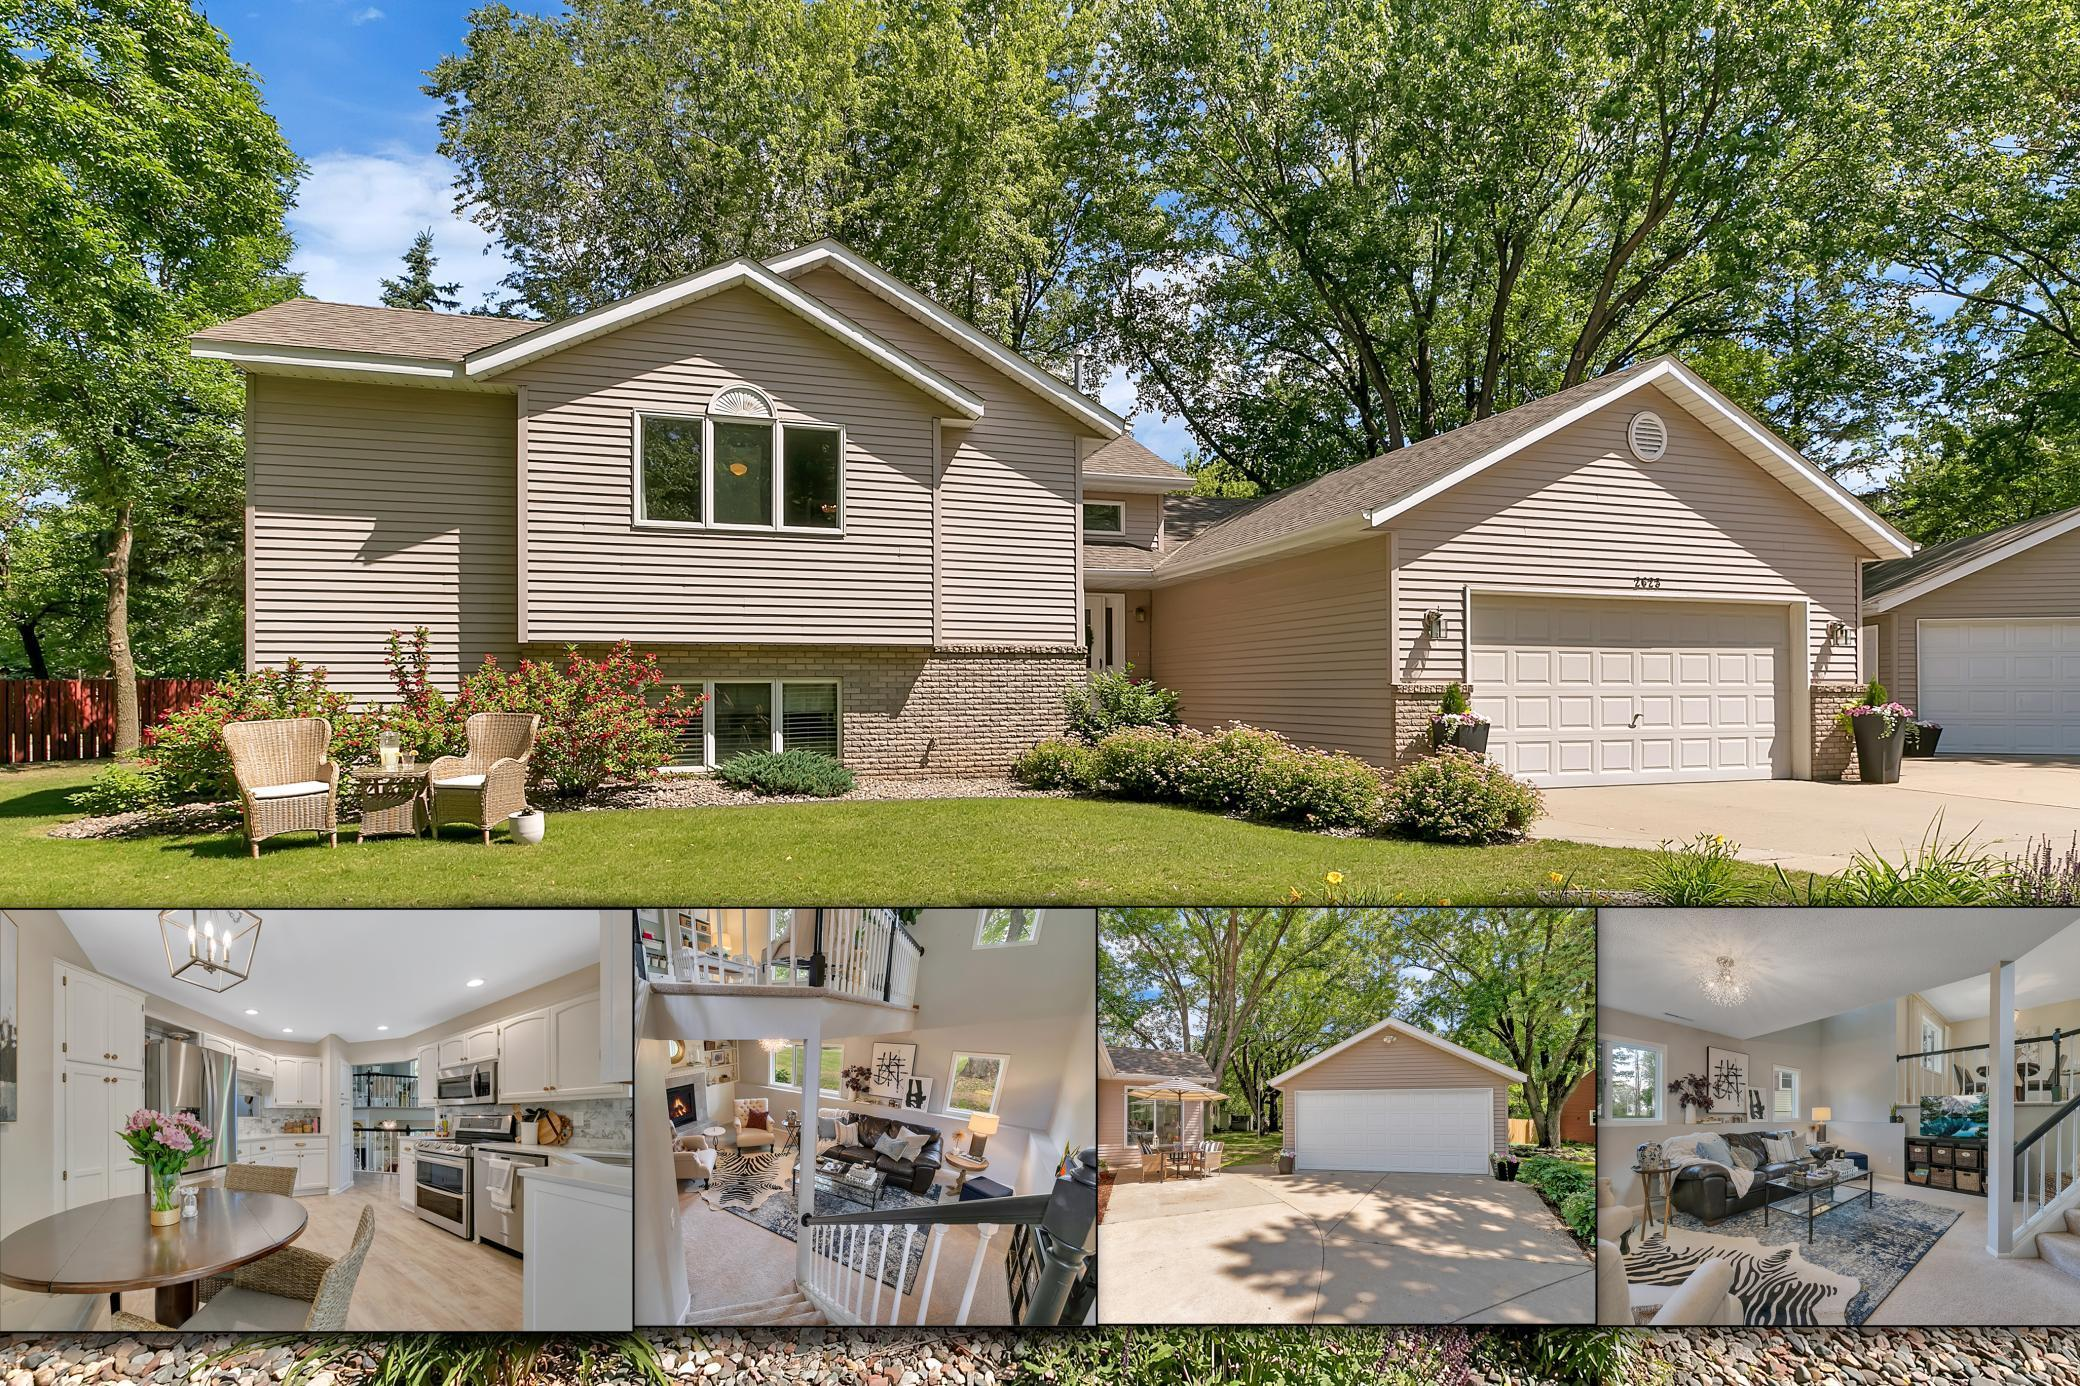 """This 4-level with unique floor plan has everything!! The newly renovated kitchen features designer touches. Enjoy the hard working quartz counters, chic marble backsplash, freshly painted cabinets w/Pottery Barn hardware, lighting, and window treatments. There is brand new luxury laminate white oak wood floors throughout the entire main floor. And the sunroom just off of the kitchen is bound to be your most used space! You'll love the tongue & groove walls and vaulted ceilings and wall to wall windows. Four bedrooms total; two up and two down. Wait until you see the master walk-in closet! His and hers closets with a celebrity worthy remodel of """"hers""""! Professionally designed and executed to be the ultimate luxury closet! The upper level living room has great built-ins and the lower level family room is sure to please with a cozy gas fireplace. The large 4th level has a 14x14 laundry plus lots of storage. Awesome fenced backyard and 10x16 storage shed. This home has it all! 4 car garage"""